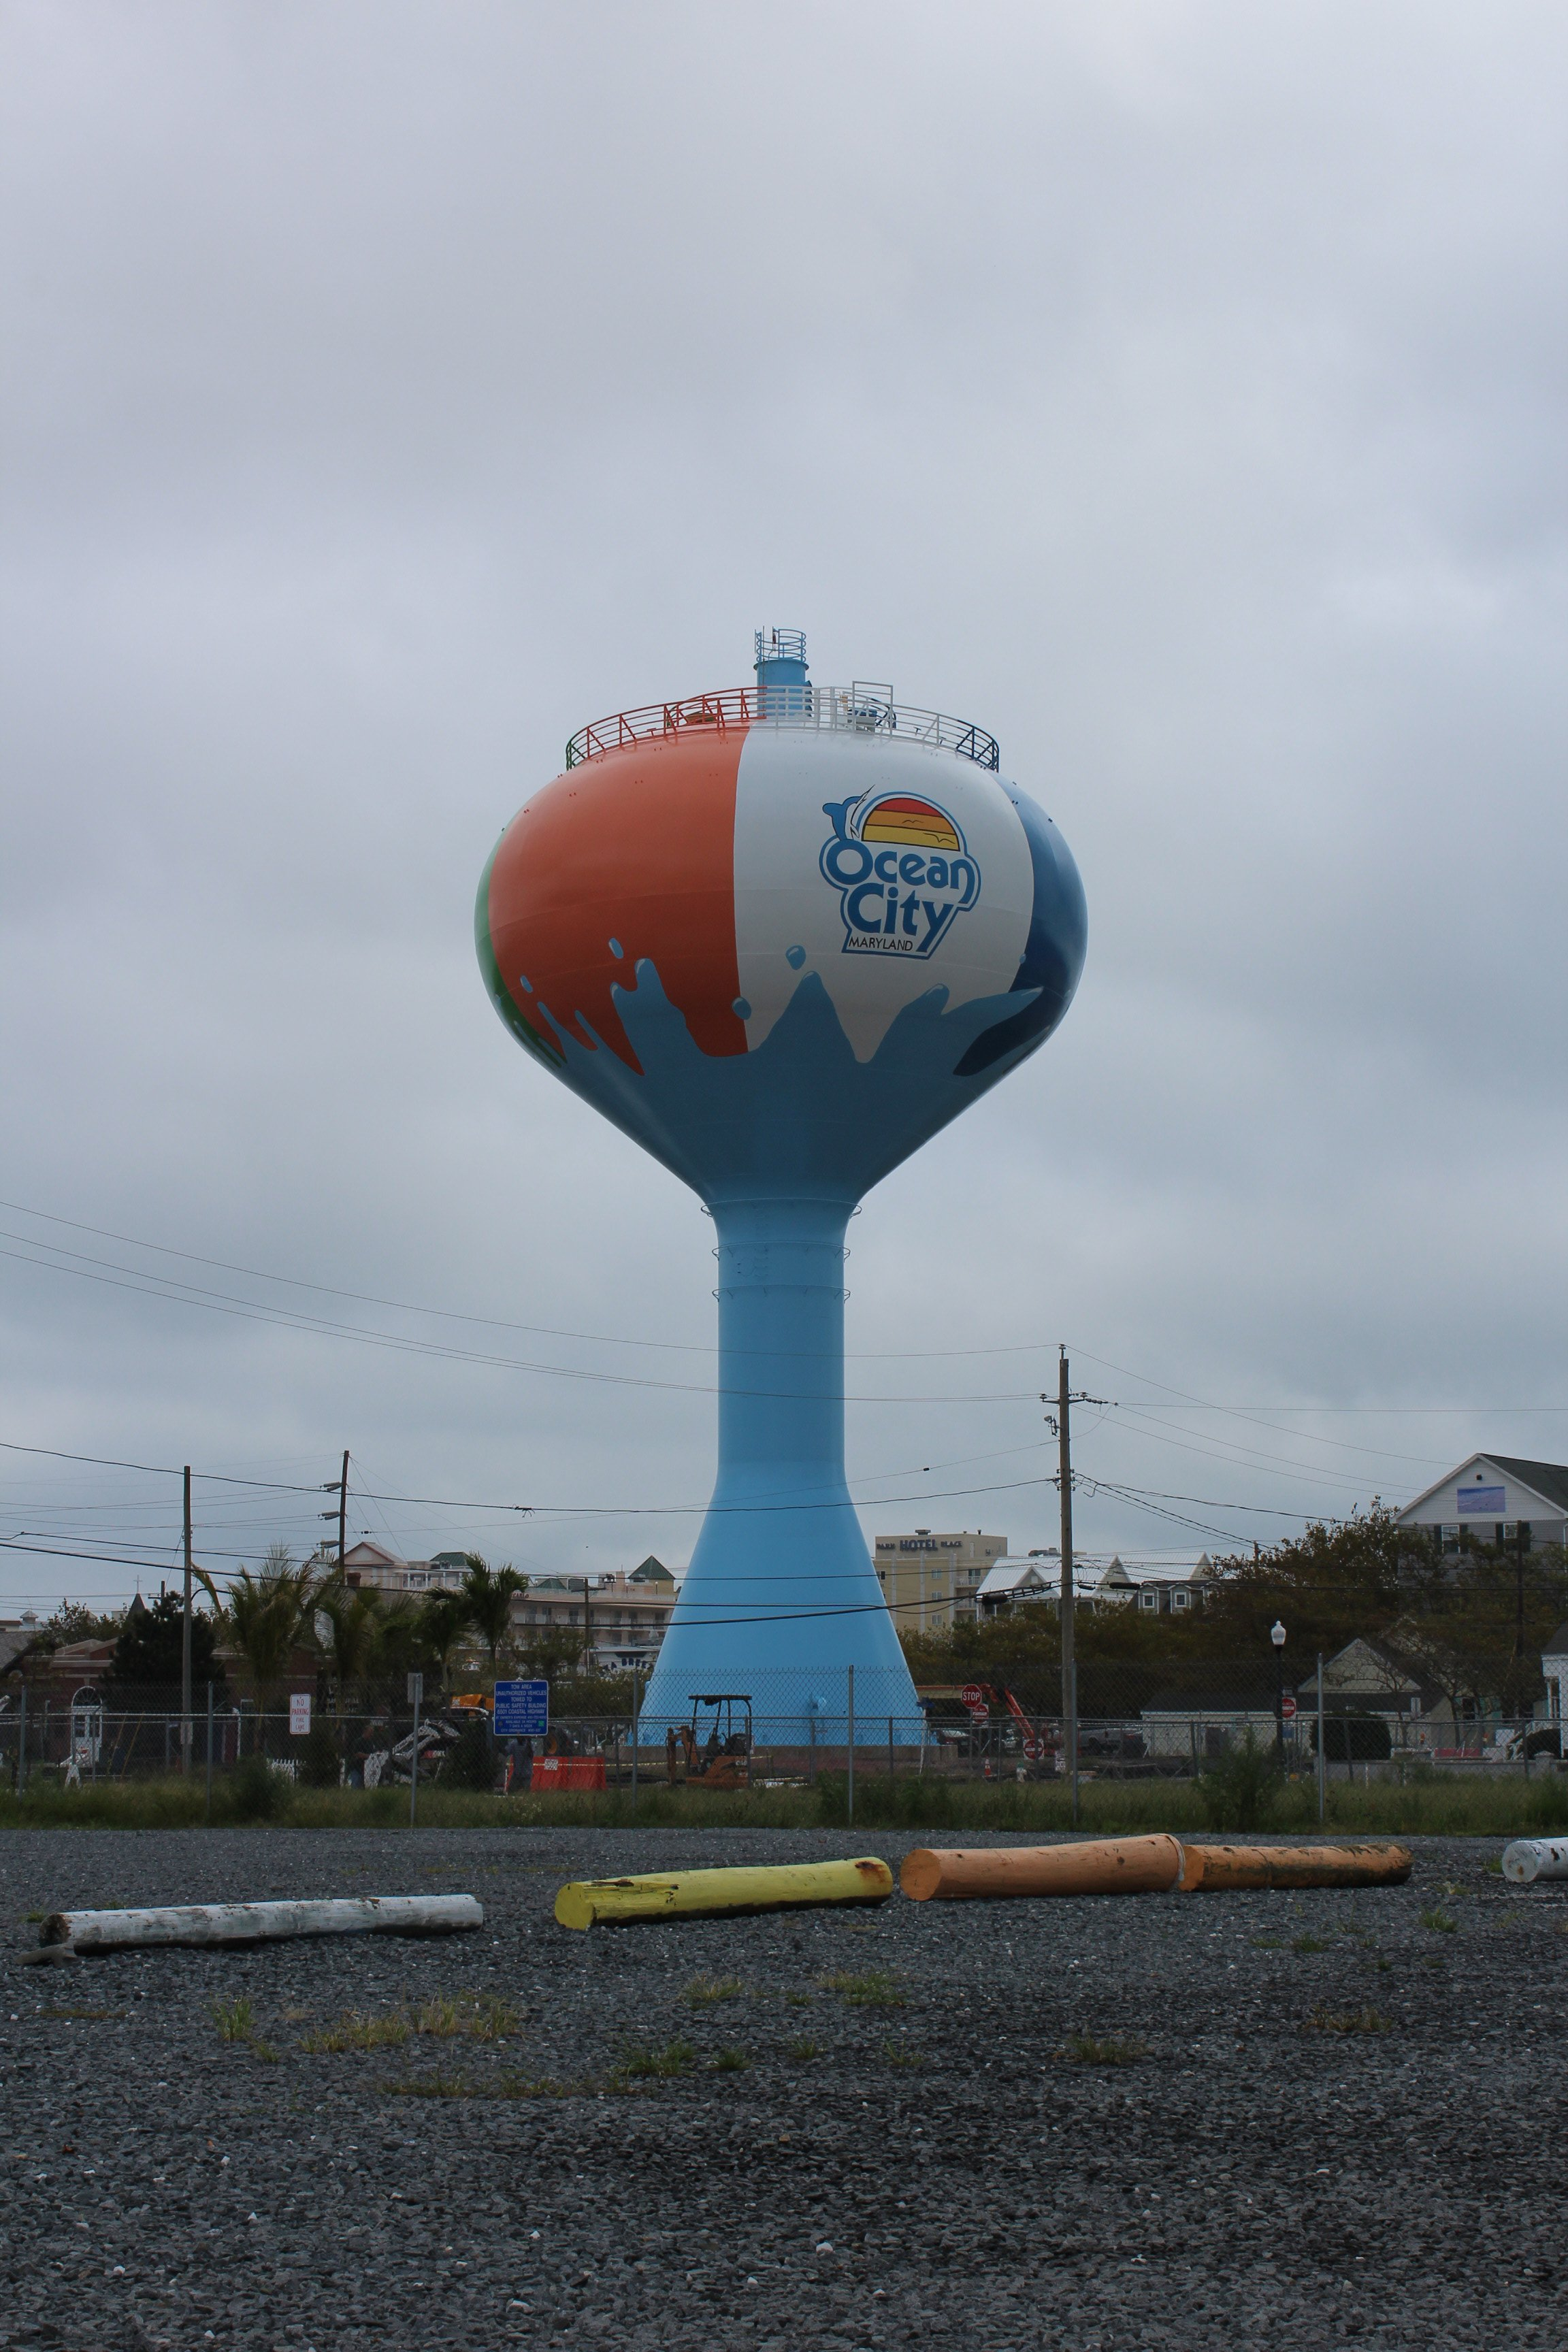 ocean city u0026 39 s new beach ball water tower